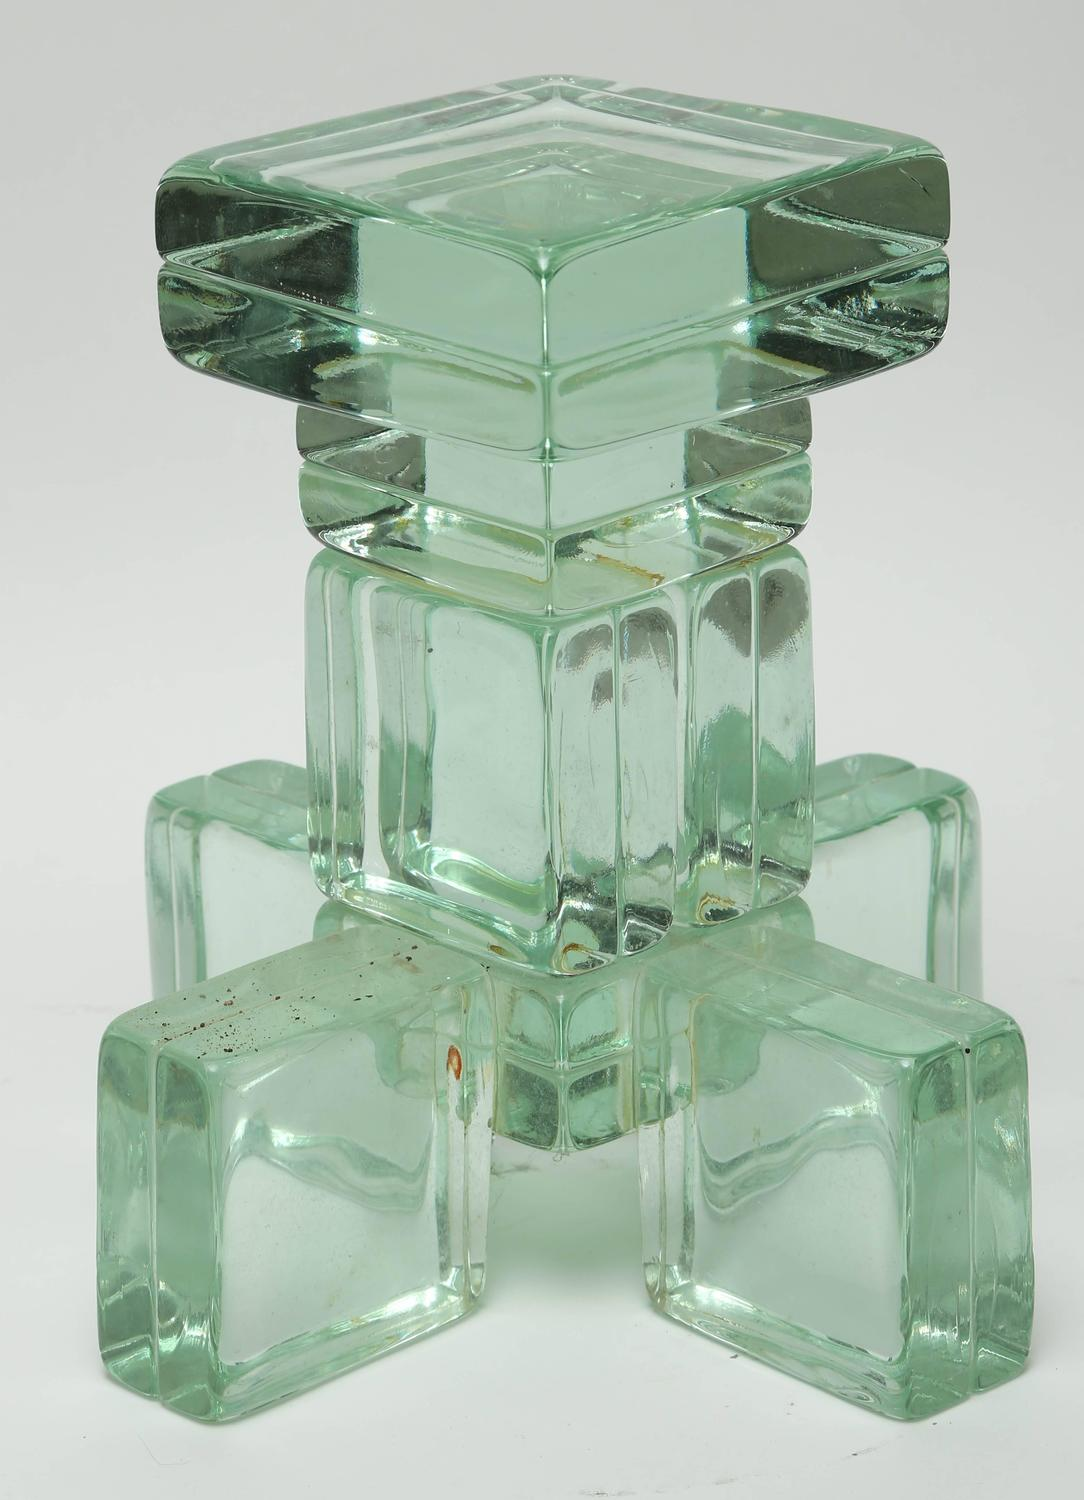 Mid Century Modern Imperial Imagineering Sculptural Solid Glass Block Side Table For Sale At 1stdibs